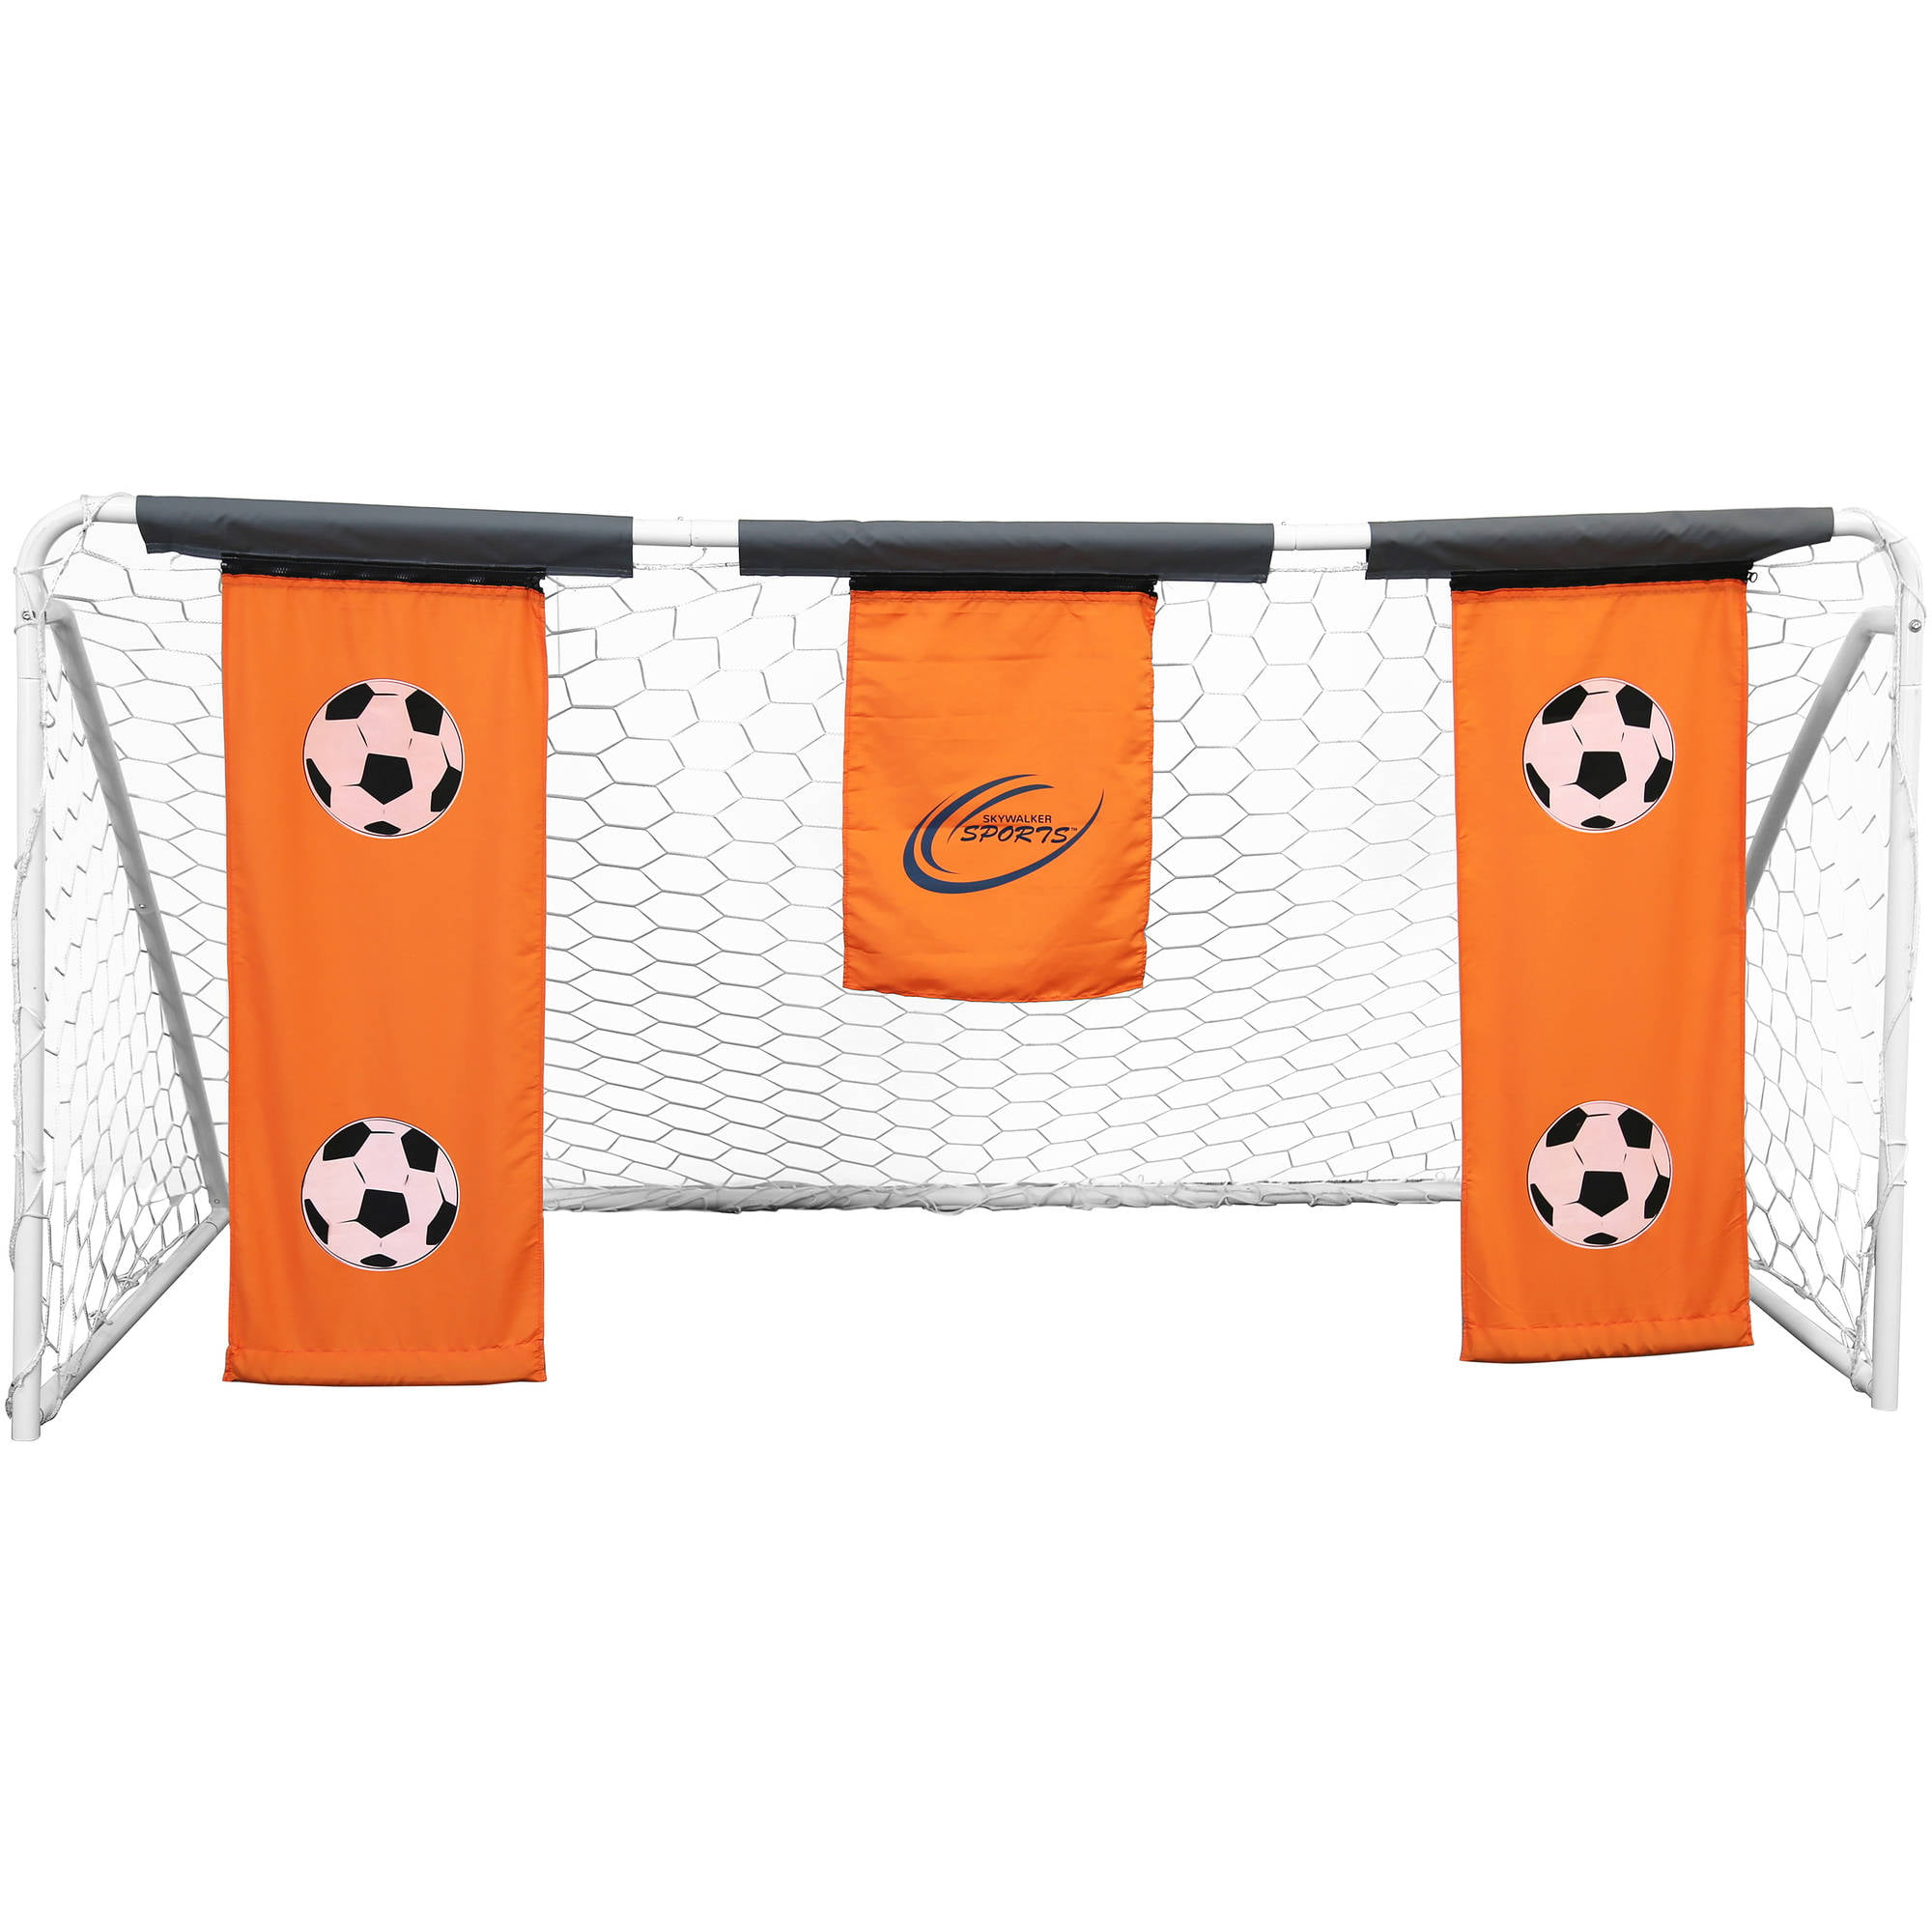 Skywalker Sports 9' x 5' Soccer Goal with Practice Banners by Skywalker Sports